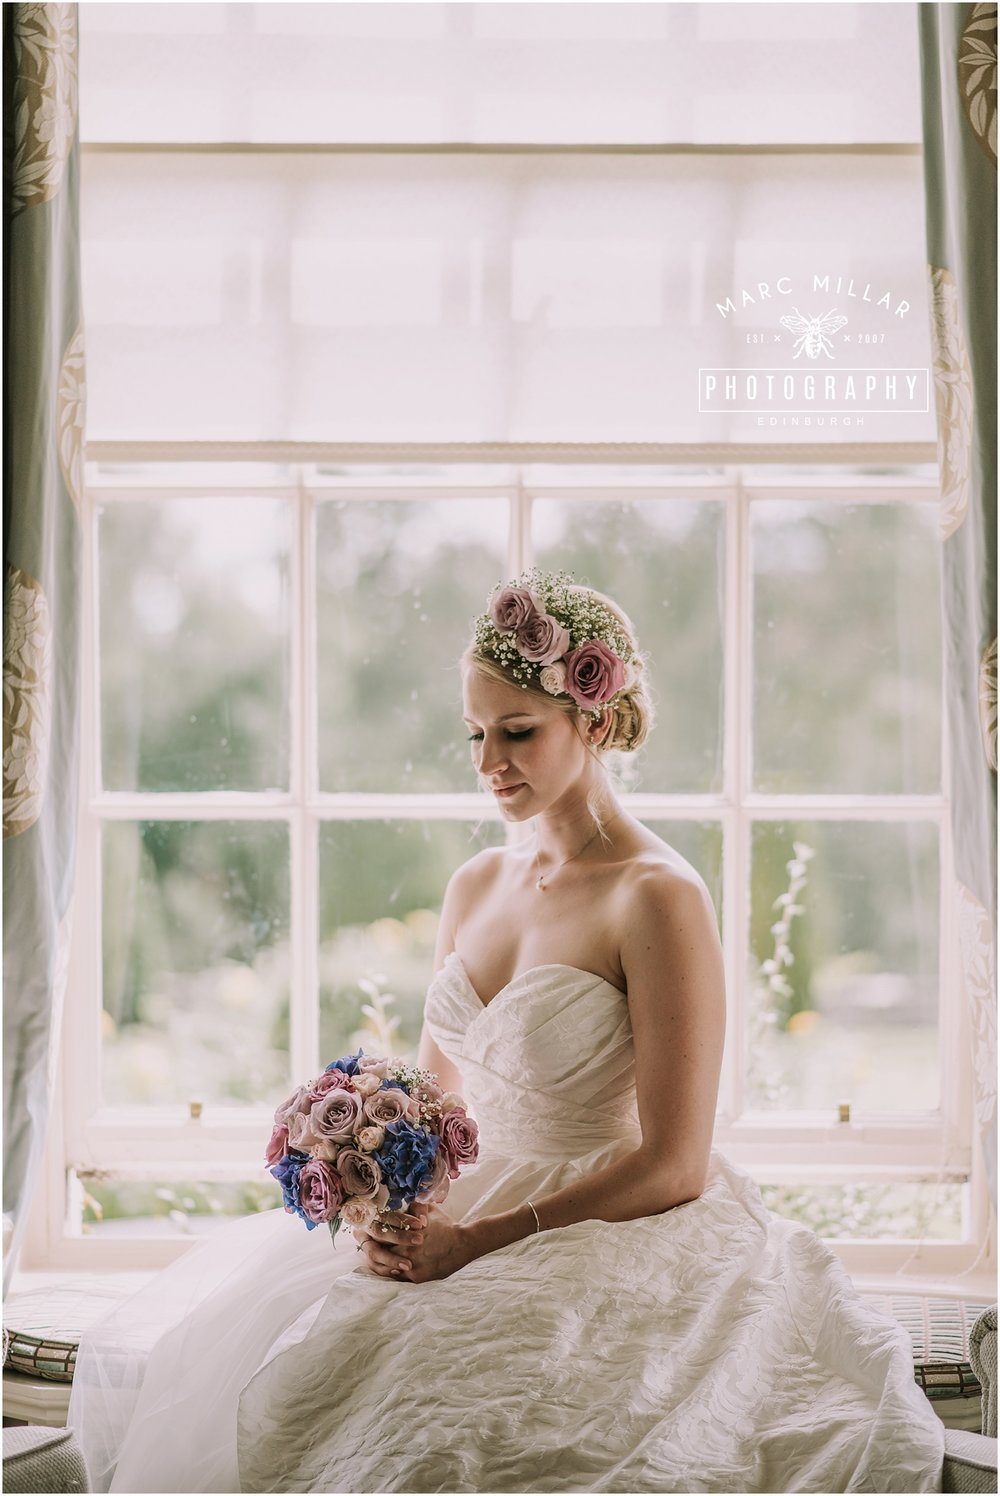 Rufflets Country House Hotel Wedding Photography by Marc Millar Photography